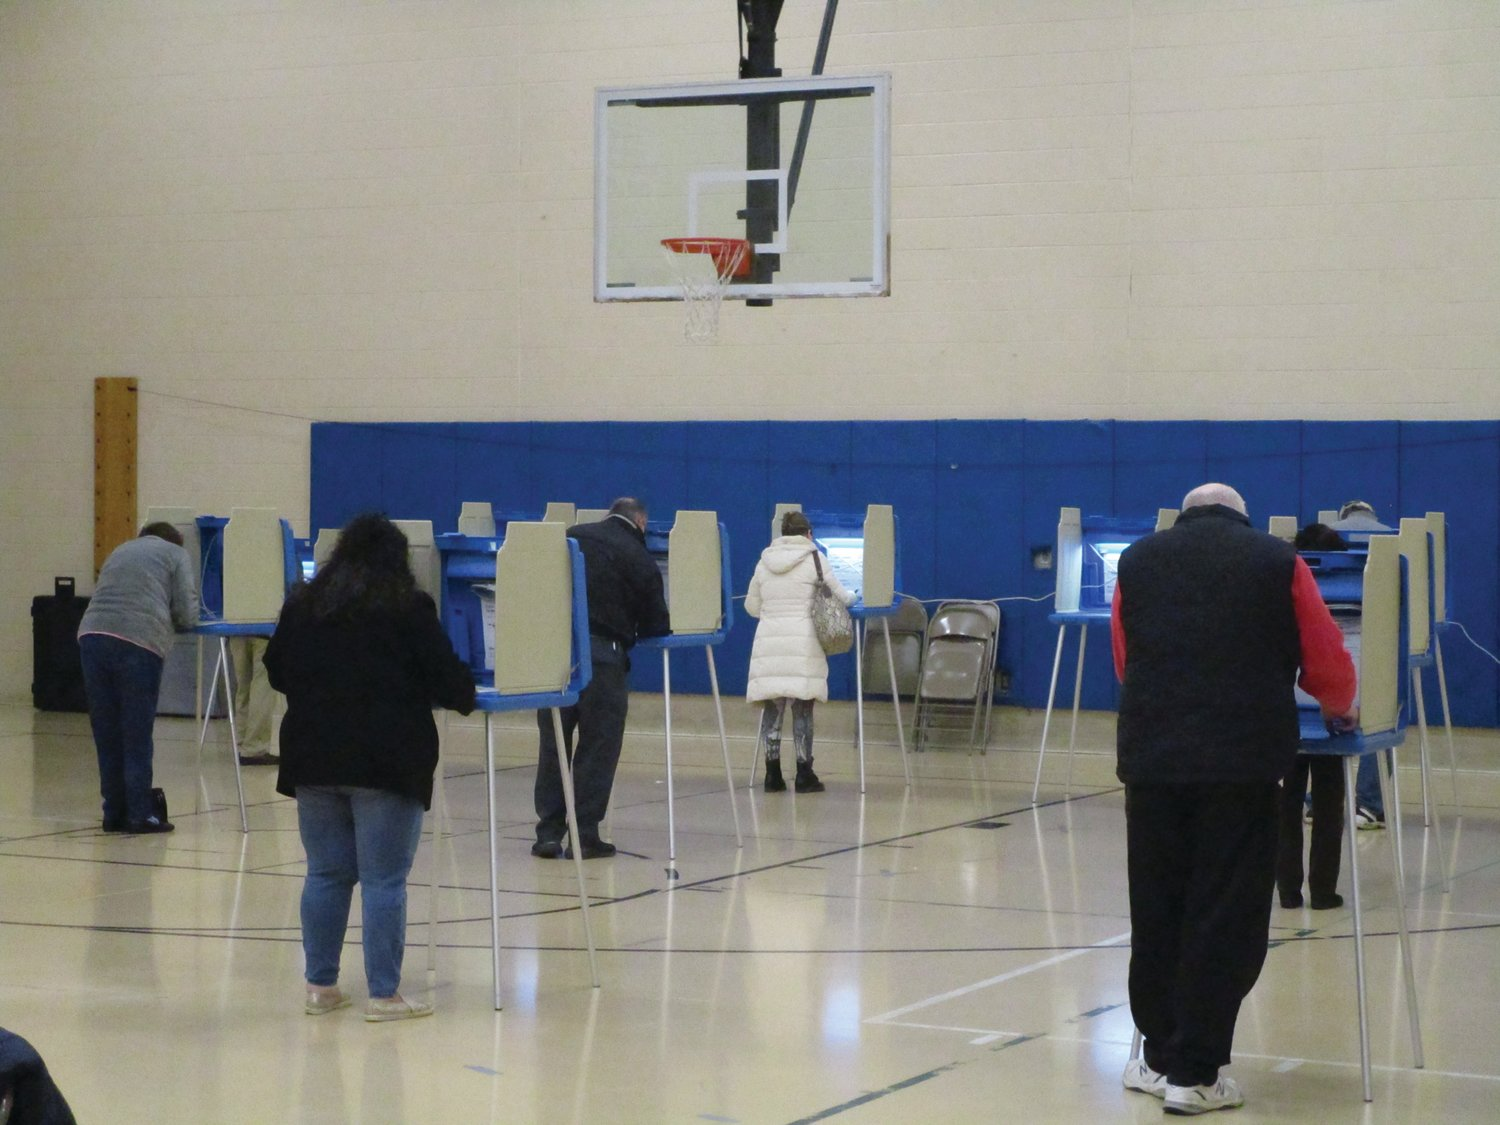 MAKING THEIR PICKS: Voters fill out their ballots at Hope Highlands Middle School